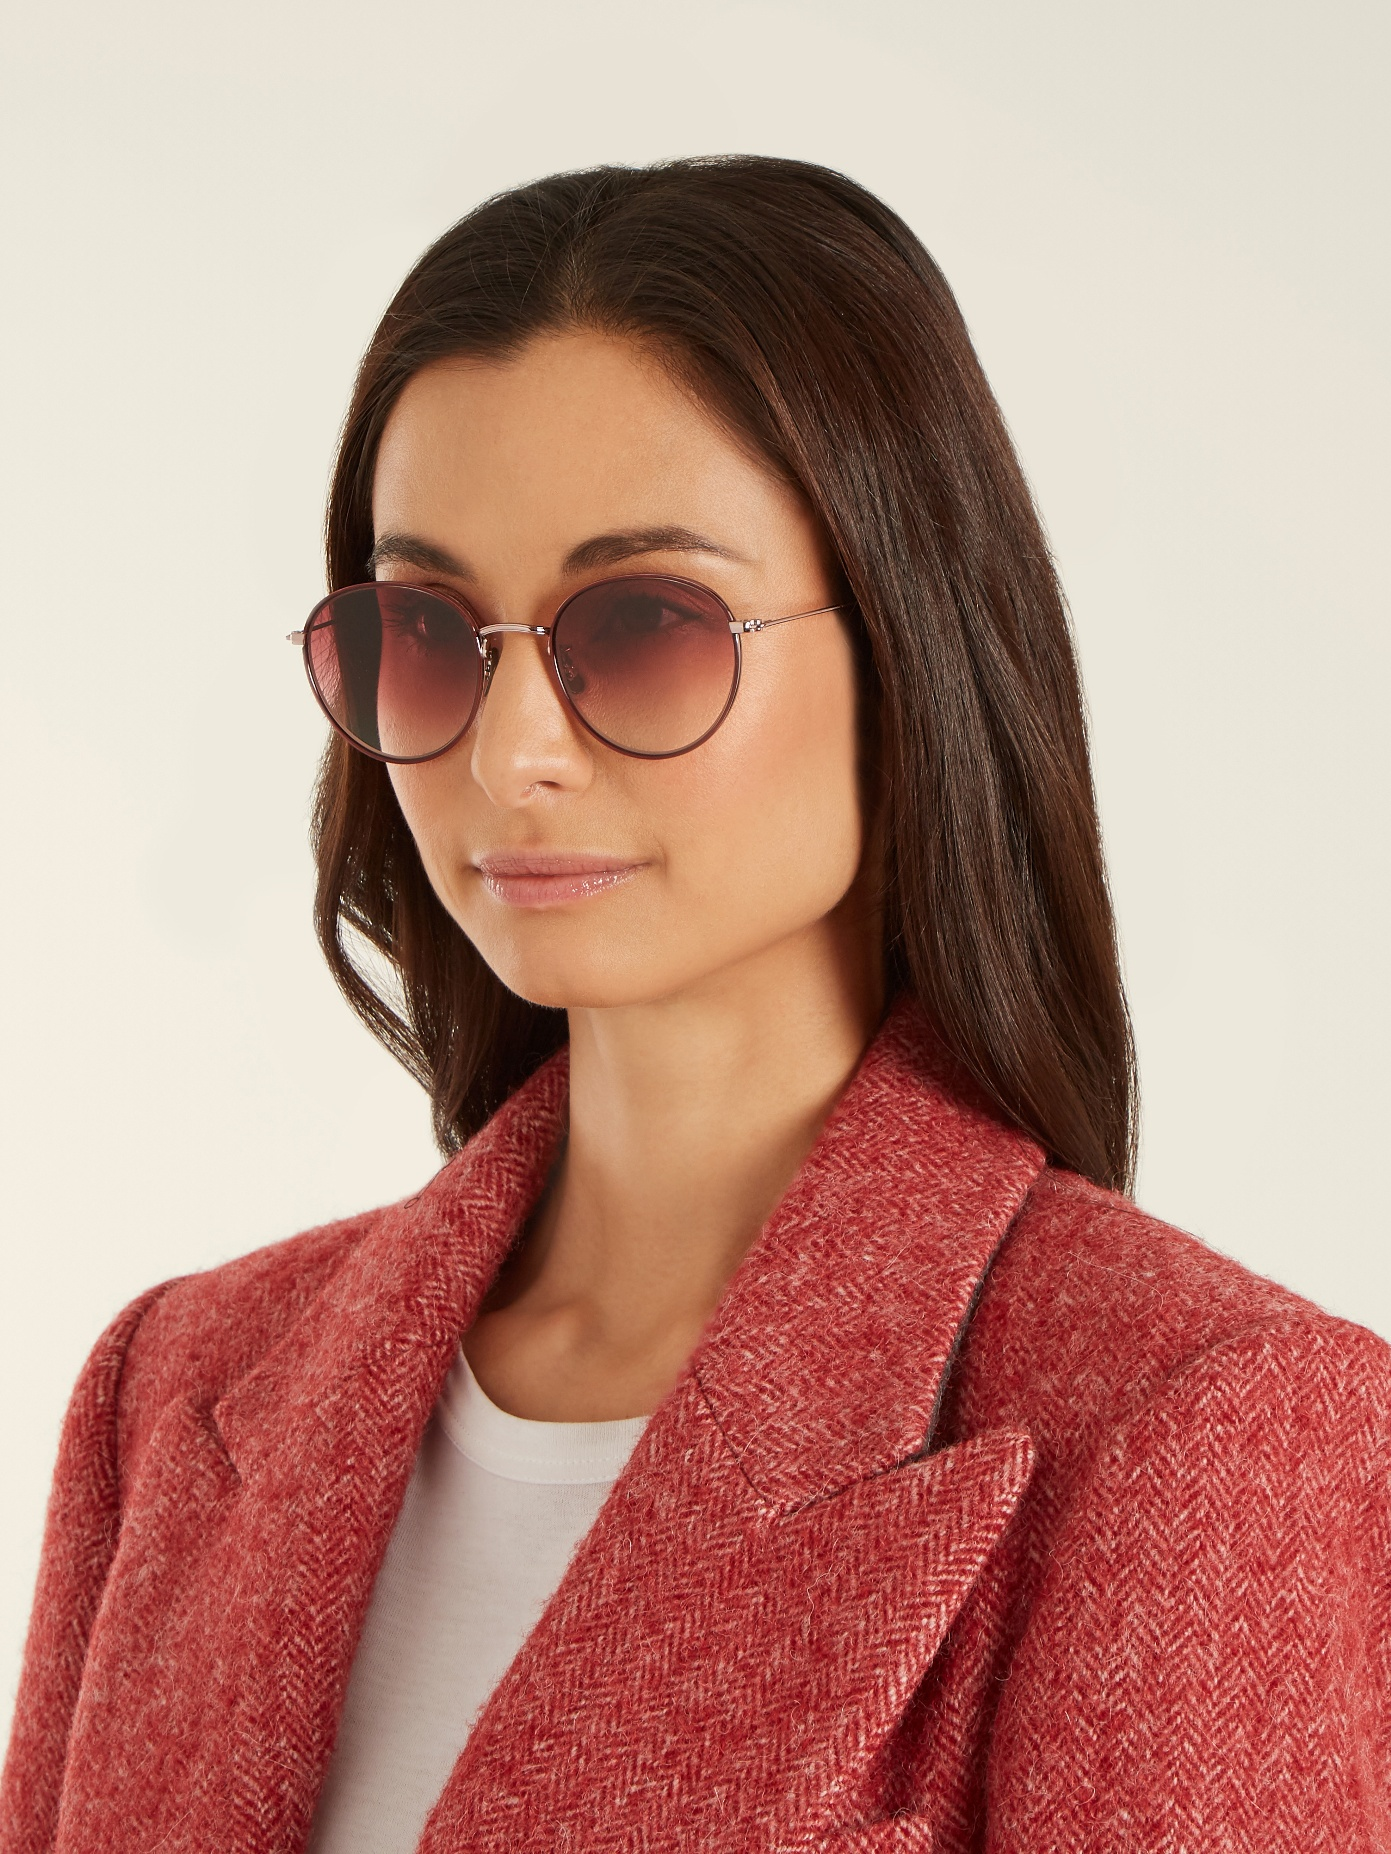 Paloma Buy Online Sunglasses Wilson Garrett Leight Sunglasses Eyeglasses Prescription Eyewear Sunglasses Wooden Glasses Online Shop About